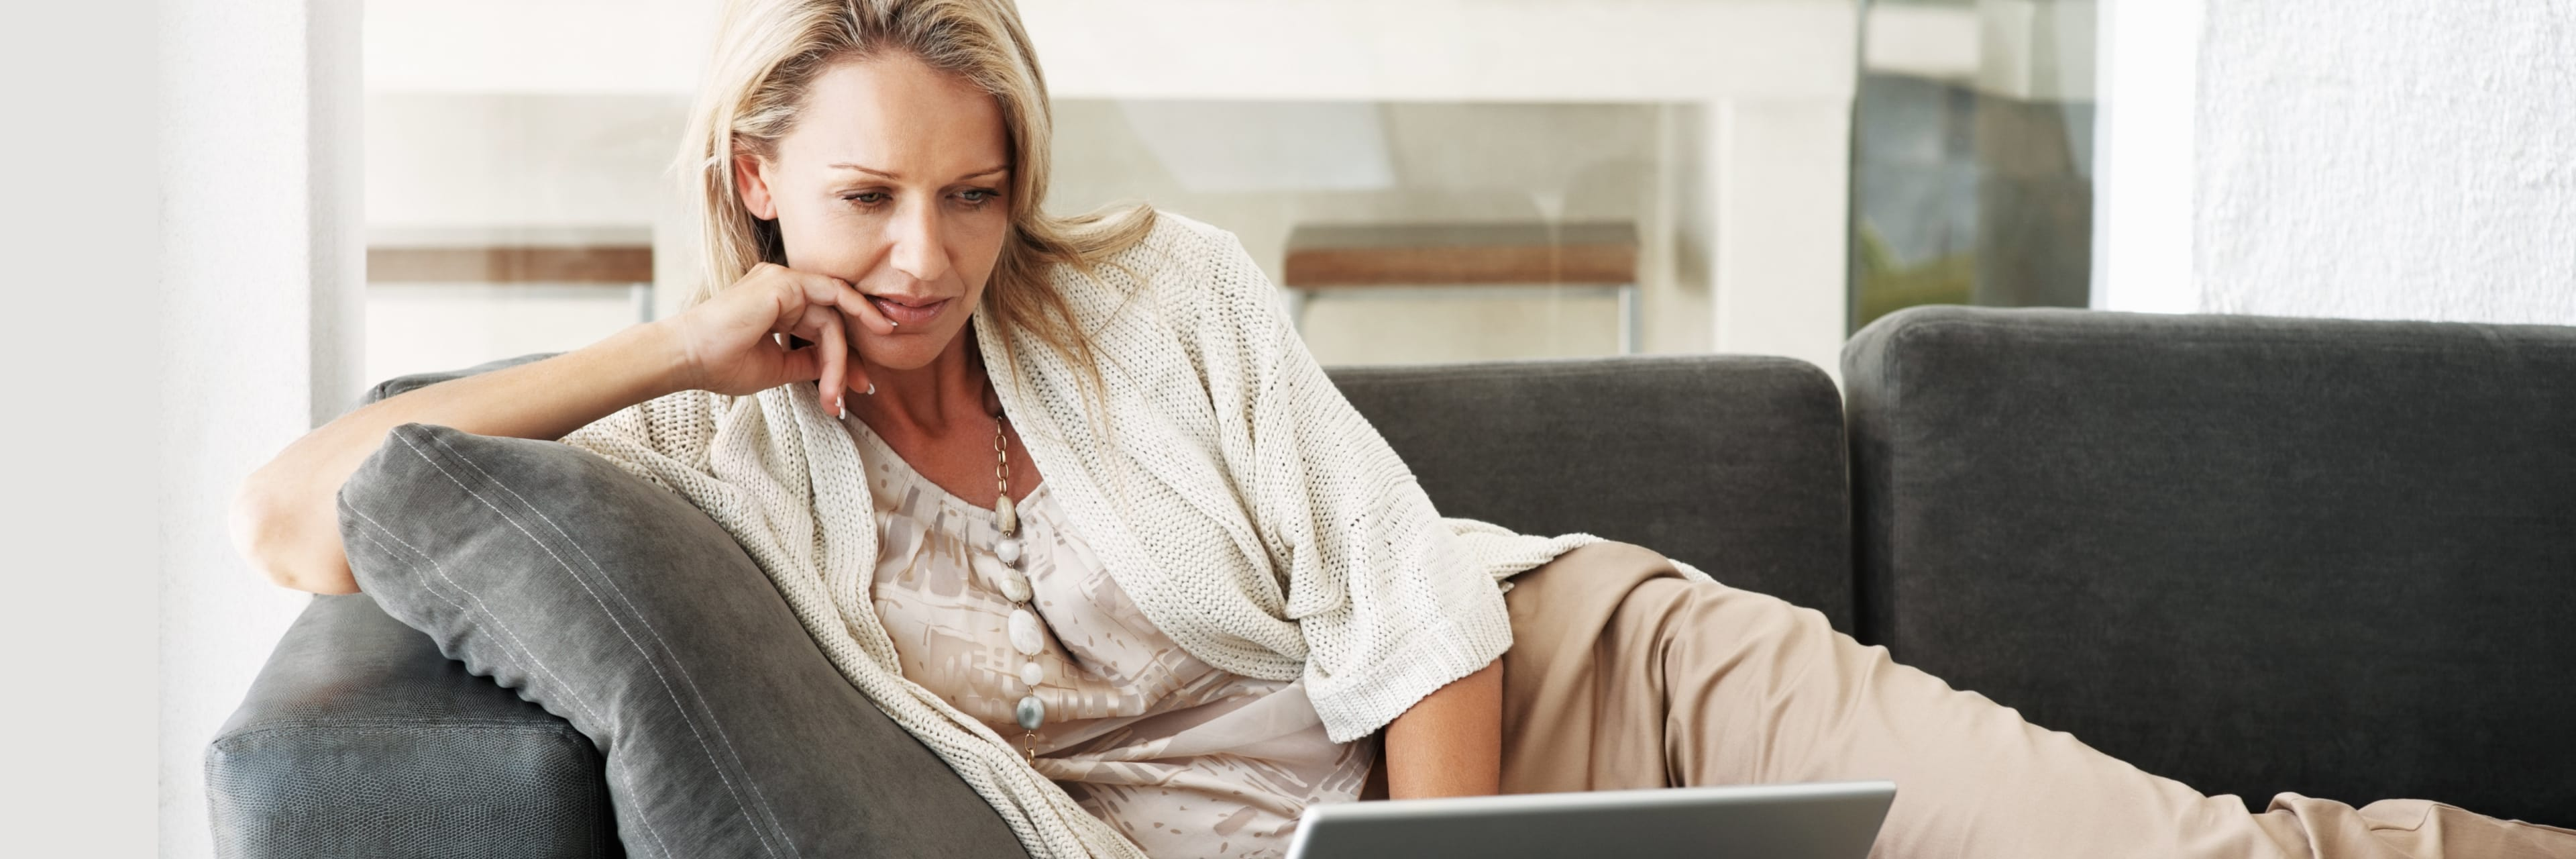 woman relaxing on couch looking at her laptop